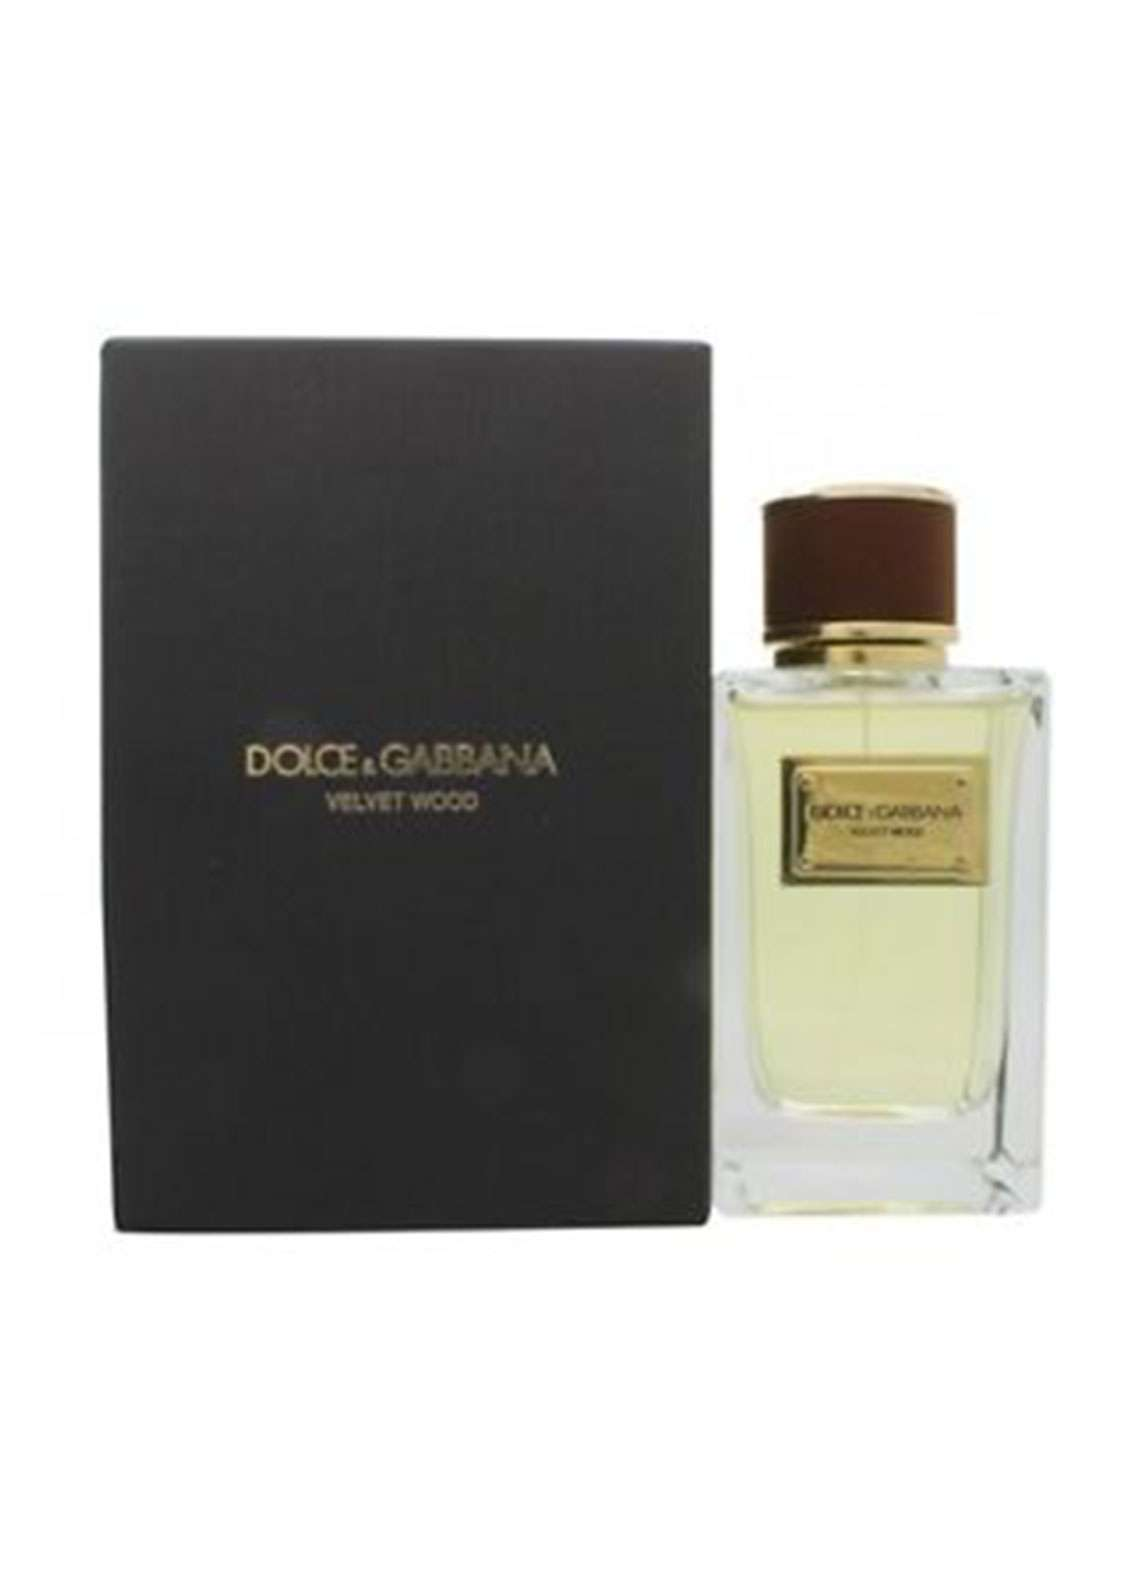 Dolce Gabbana Perfumes And Fragrances Online In Pakistan For Man